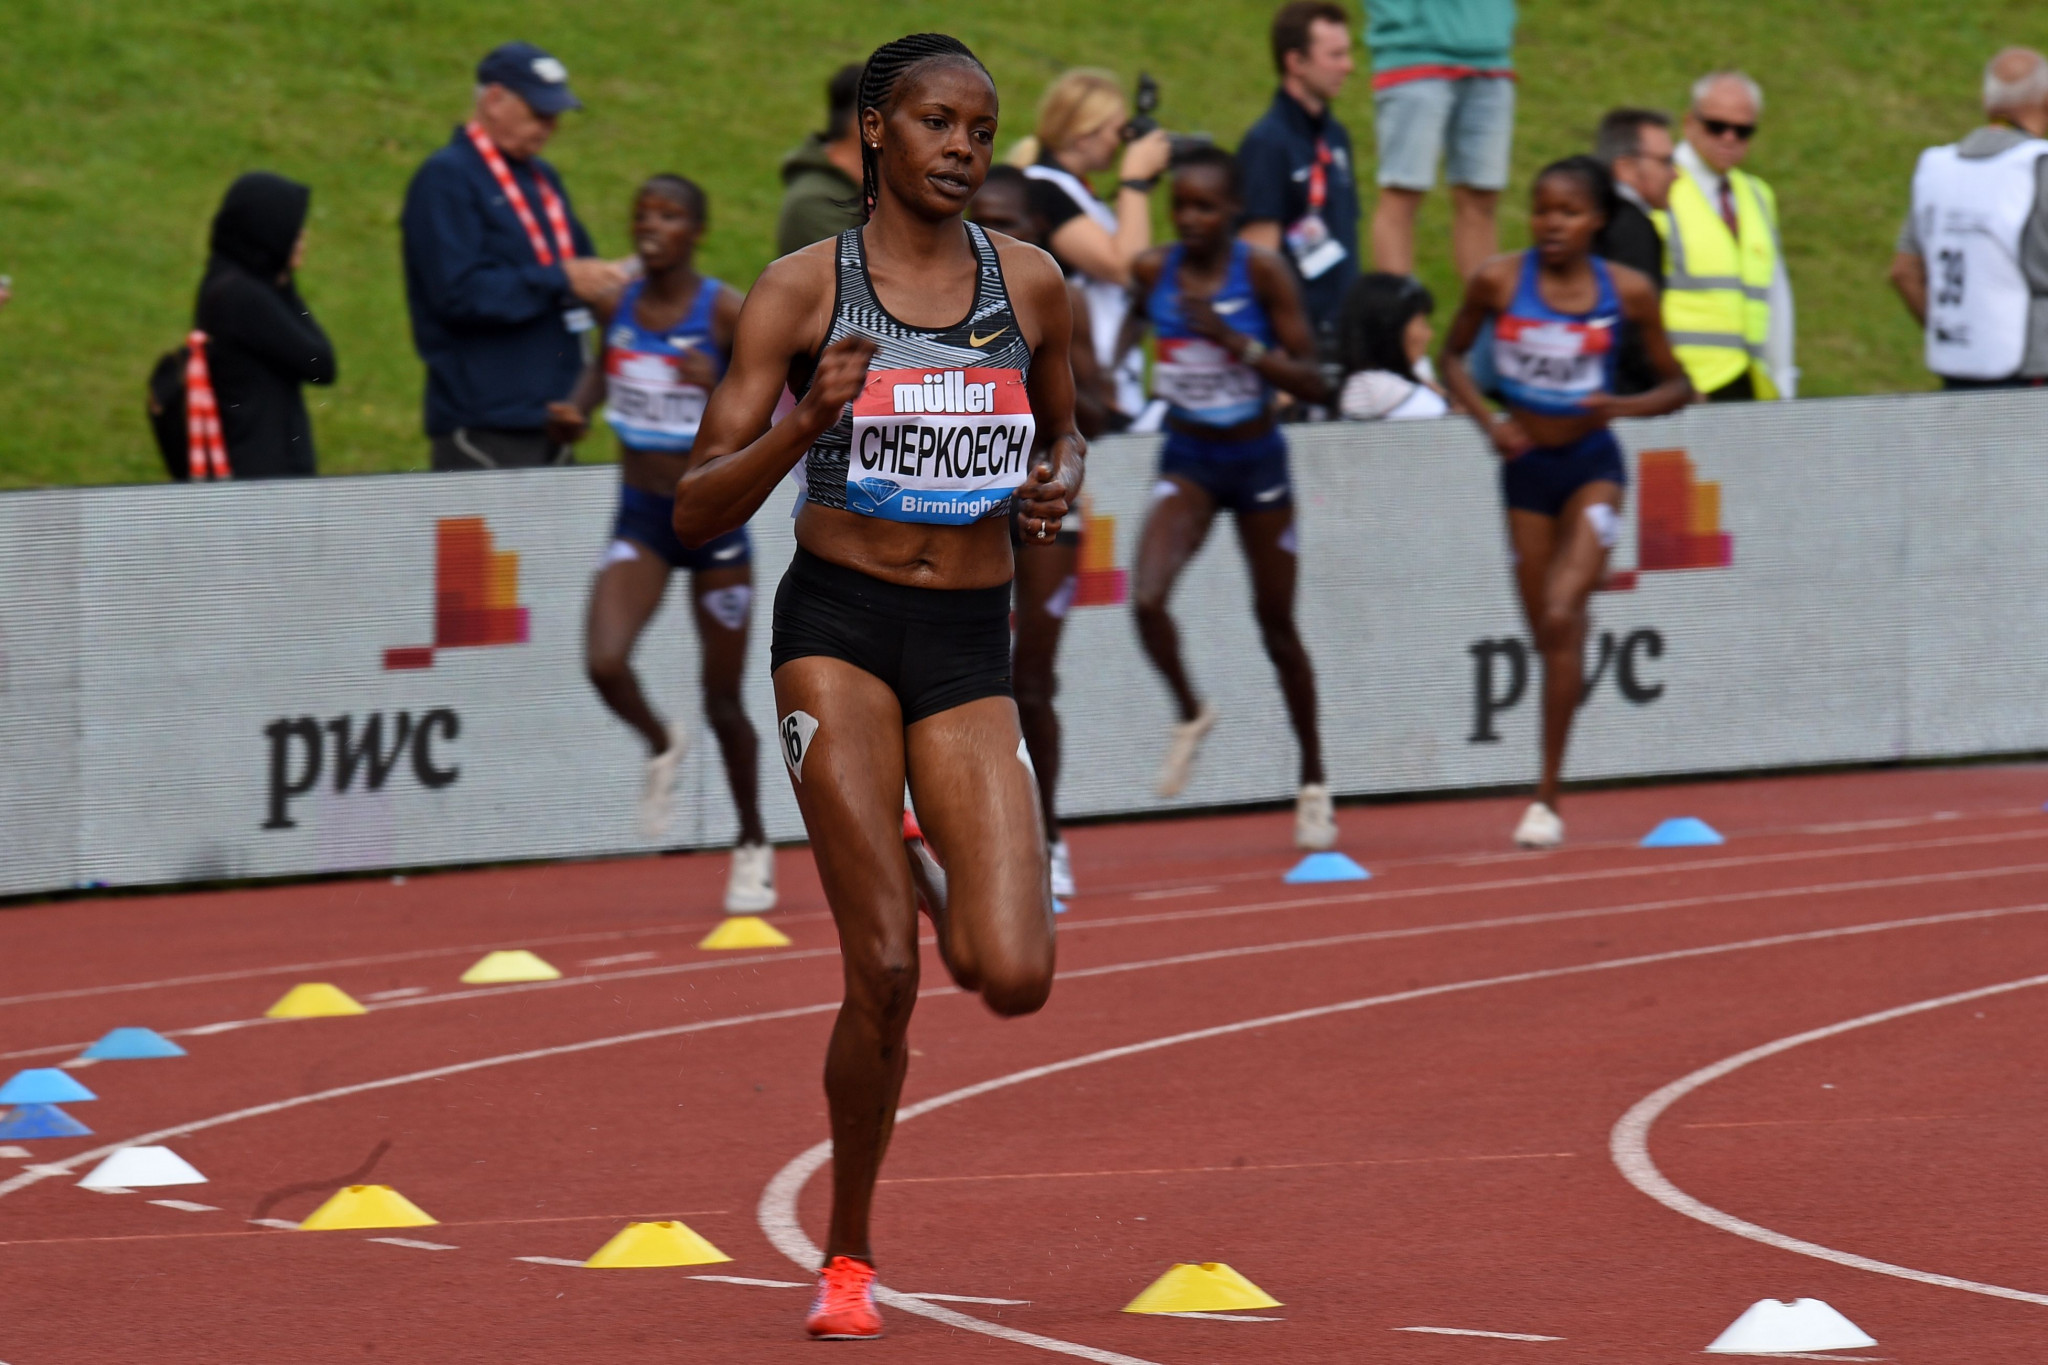 Kenyan stars opt out of African Games to focus on IAAF Diamond League